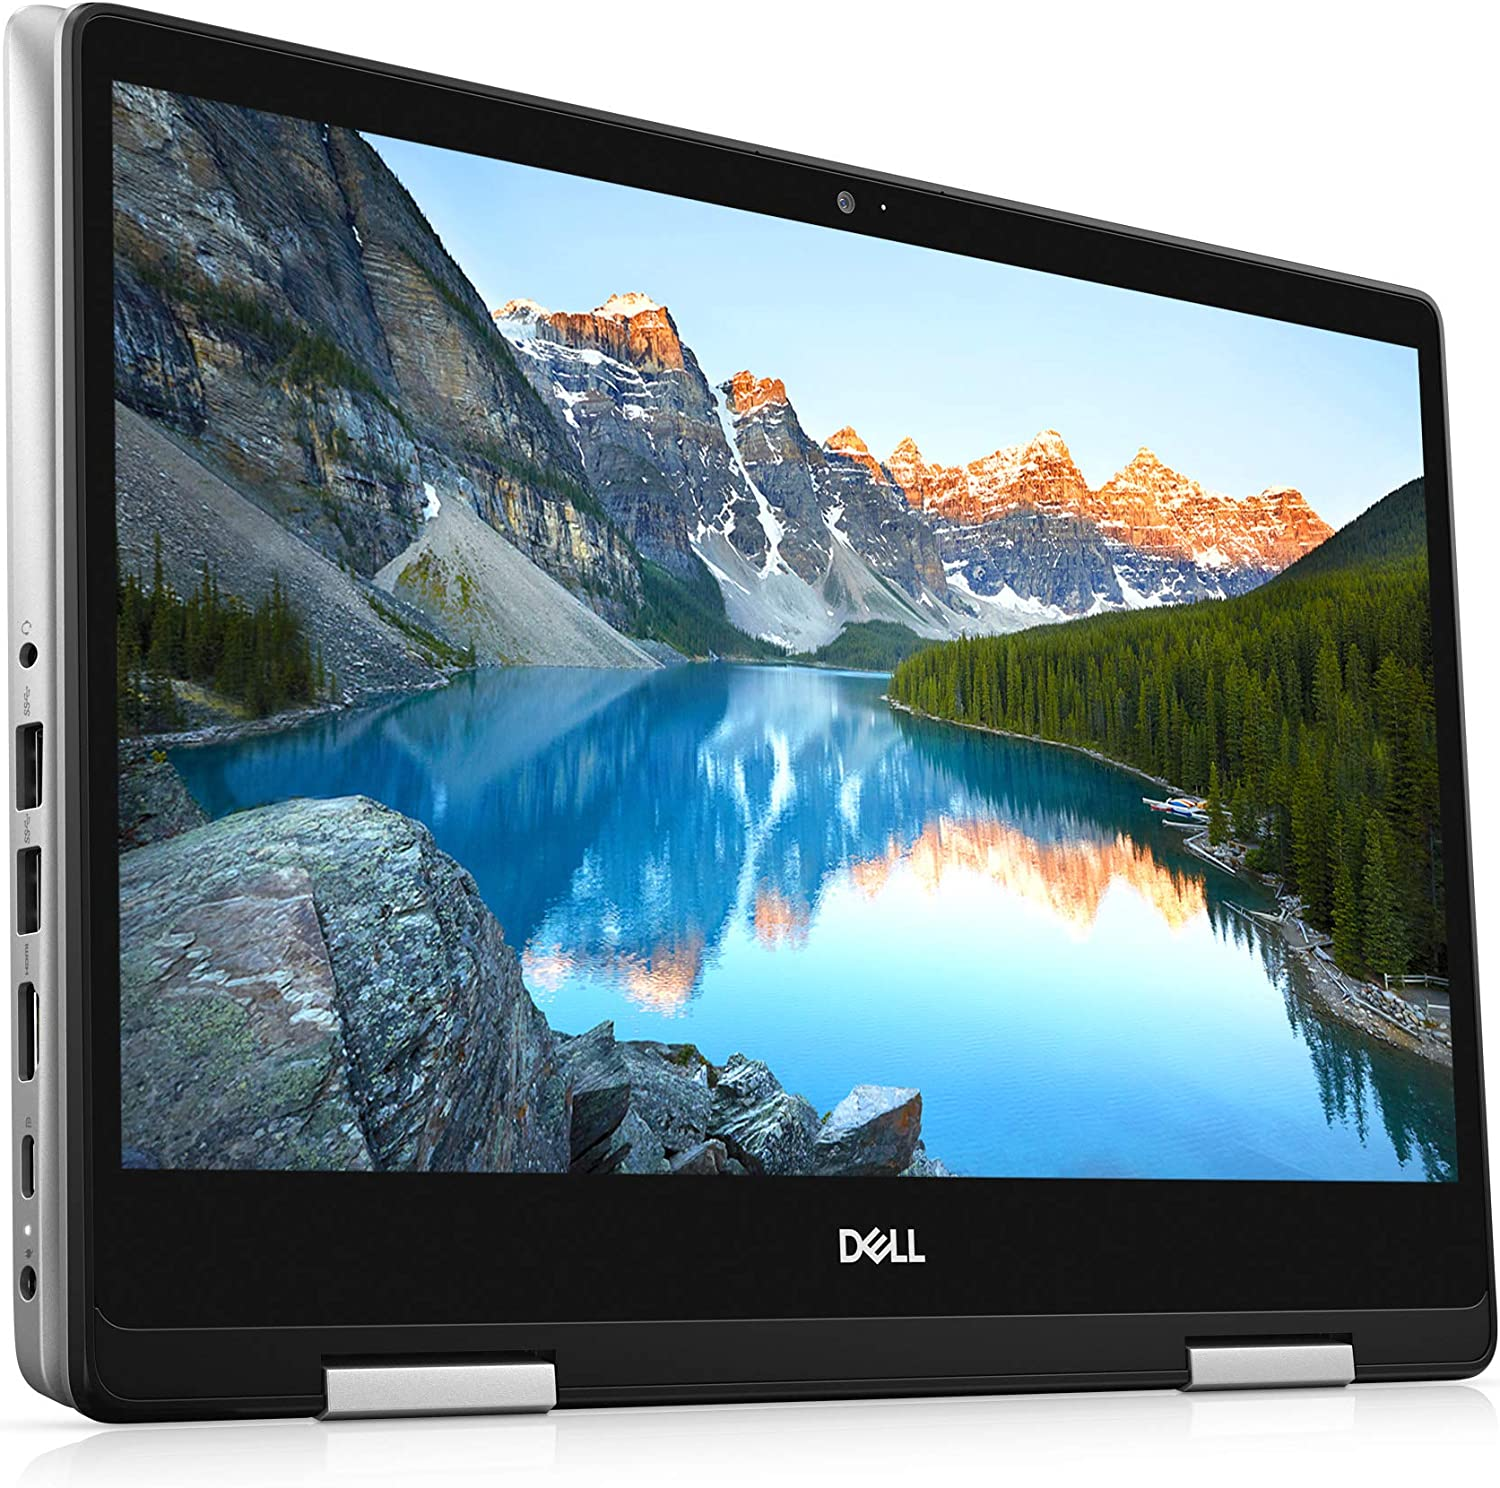 best laptop for programming for students, dell inspiron 14 5000,dell inspiron 14 3000,dell inspiron 14 7000,dell inspiron 14 5000 series,dell inspiron 14 3000 review,dell inspiron 14 5000 review,dell inspiron 14 5485,dell inspiron 1440,dell inspiron 14 5482,dell inspiron 14 amazon,dell inspiron 14 ac adapter,dell inspiron 14 amd ryzen 5, amazali.com